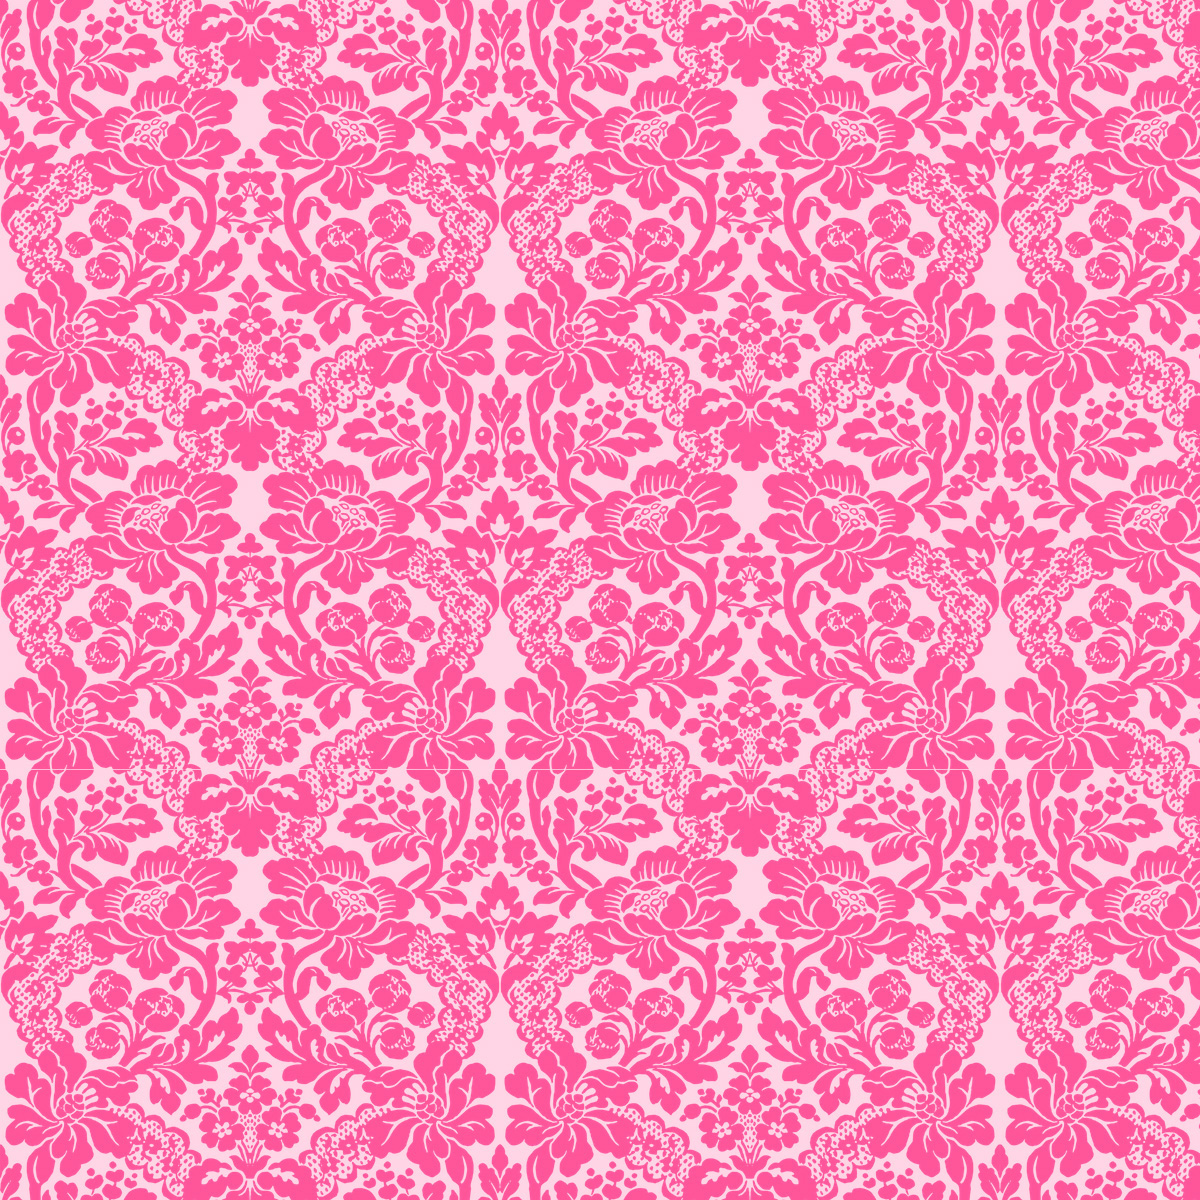 Revered image for printable pattern paper